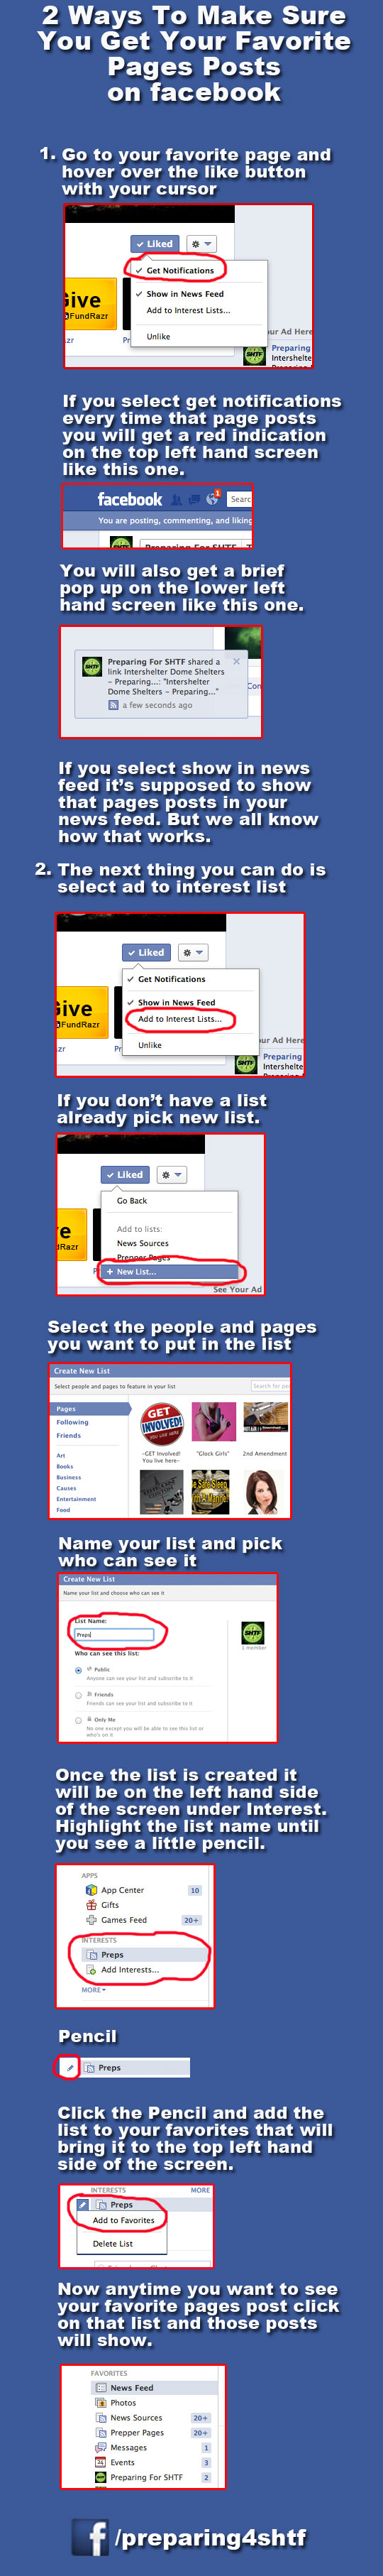 How to Get Our Facebook Posts – Infographic